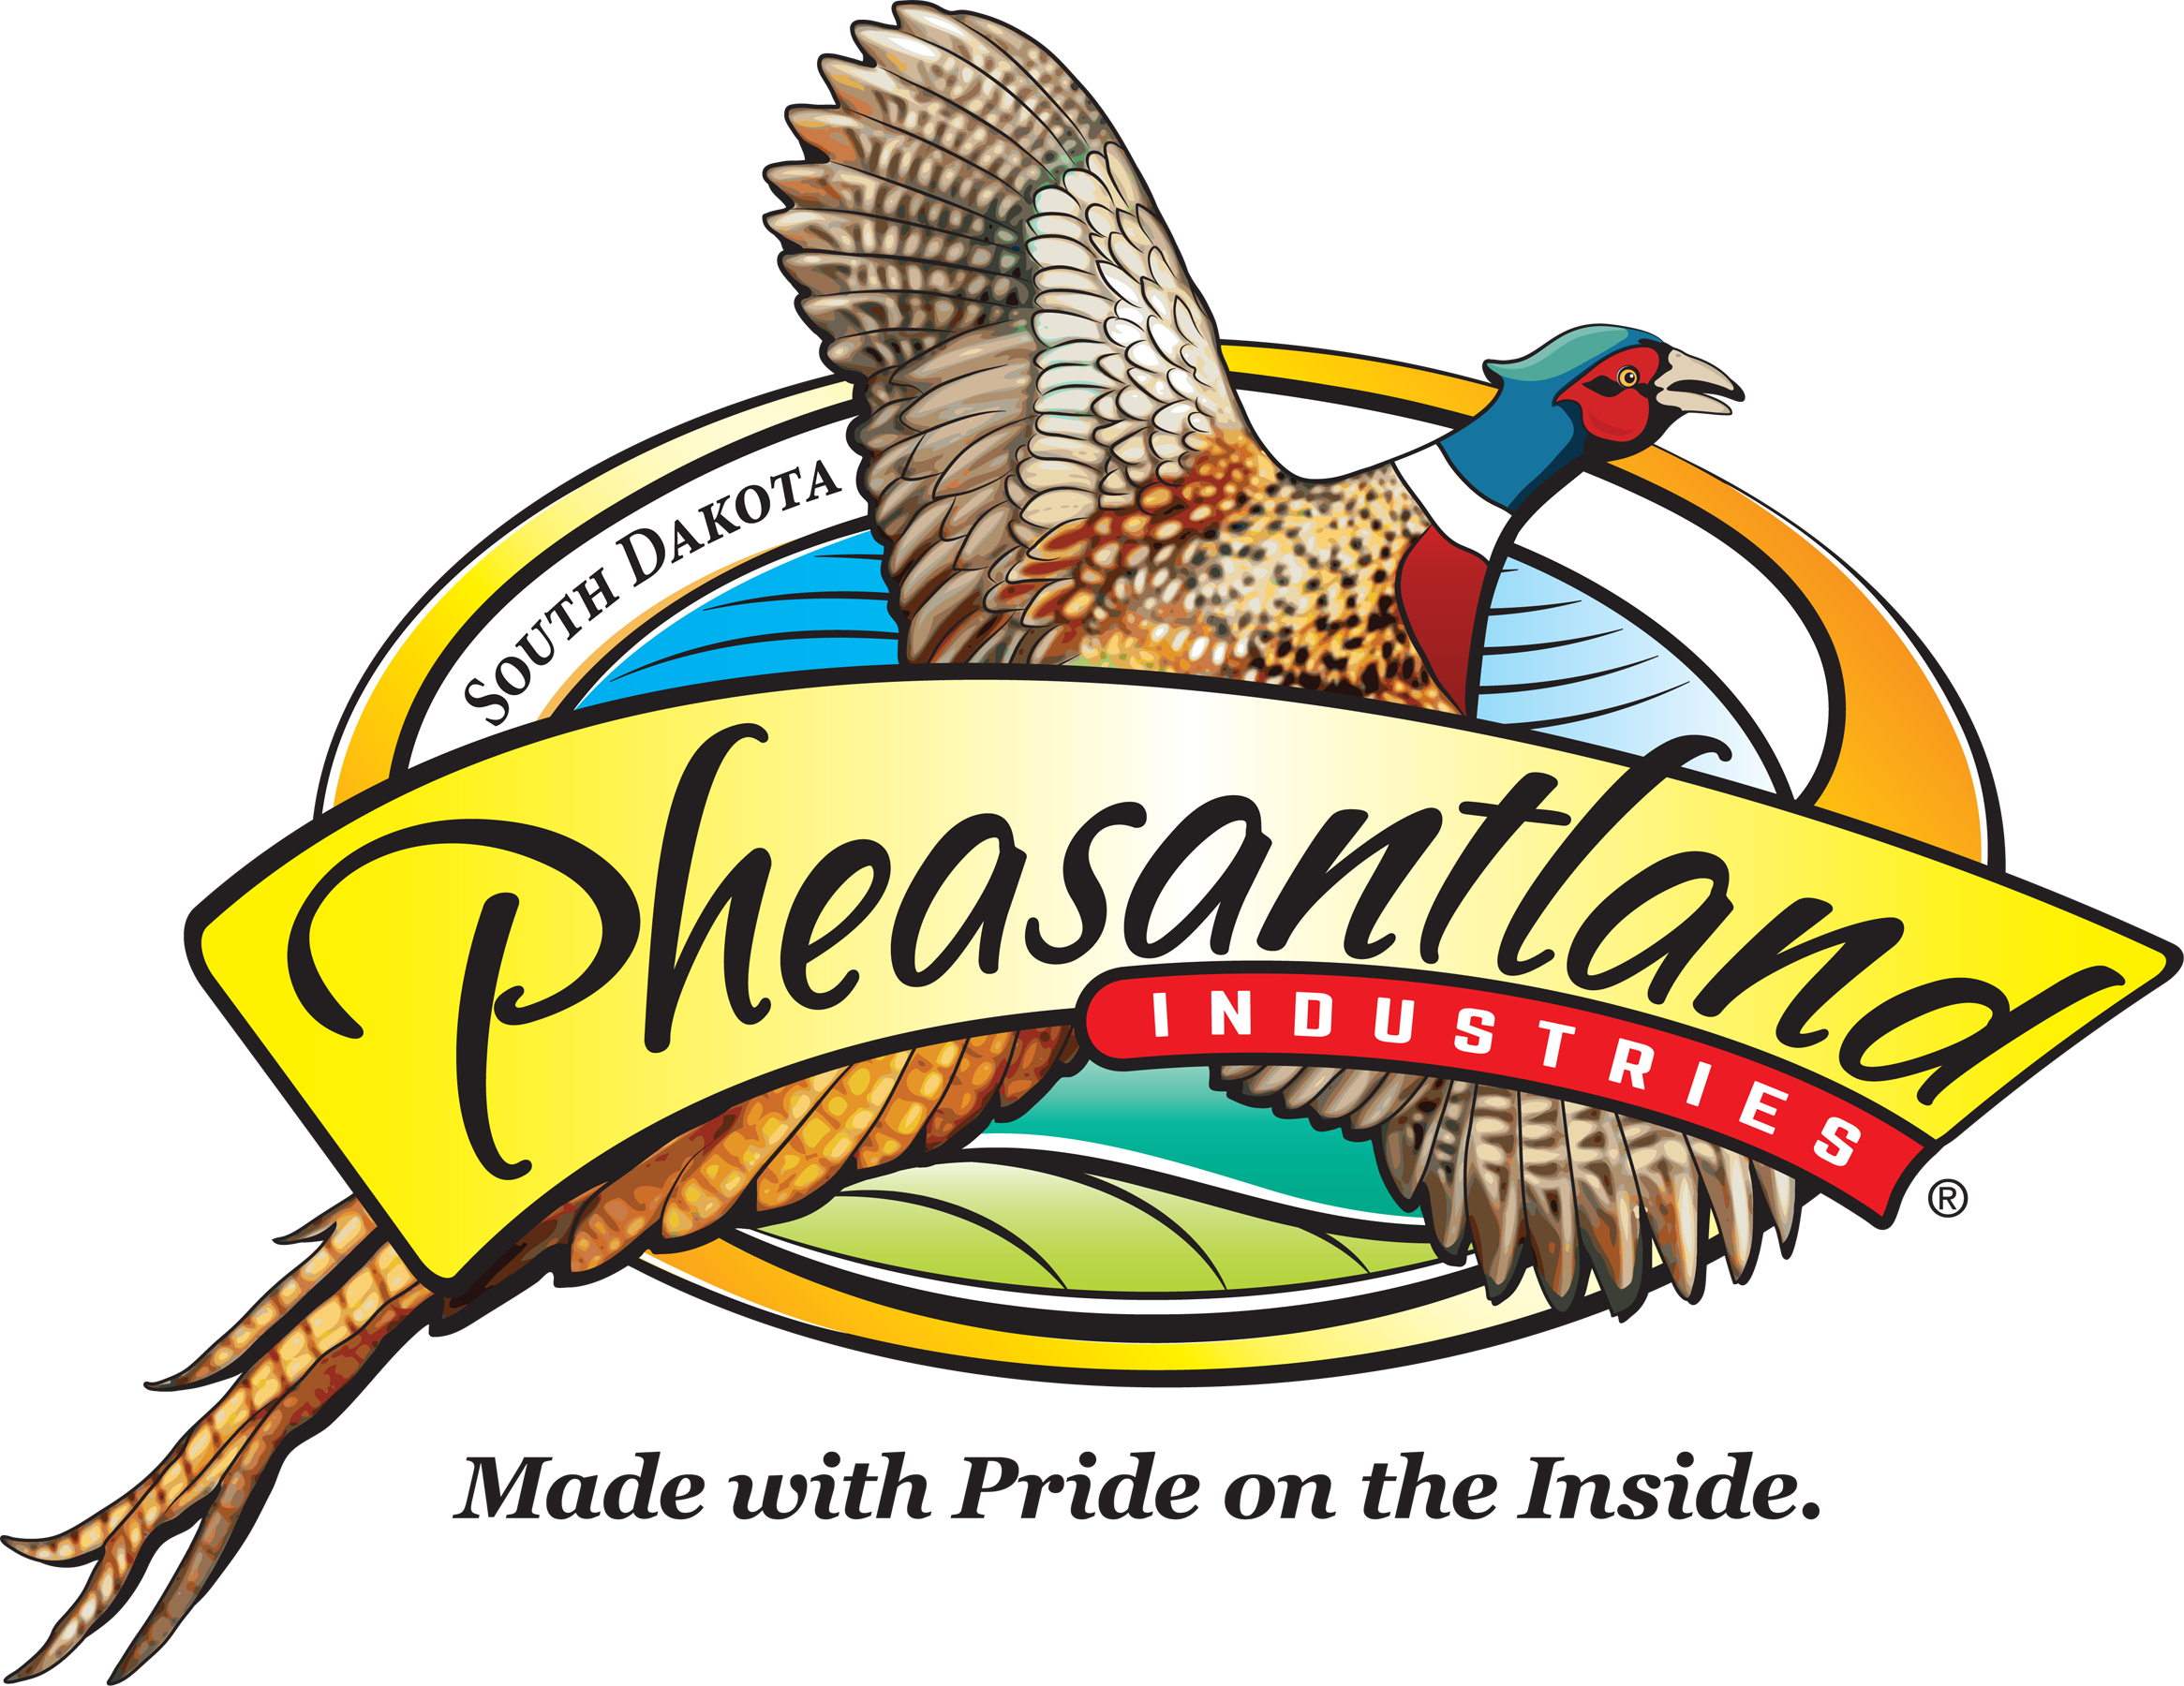 Pheasantland Industries Homepage